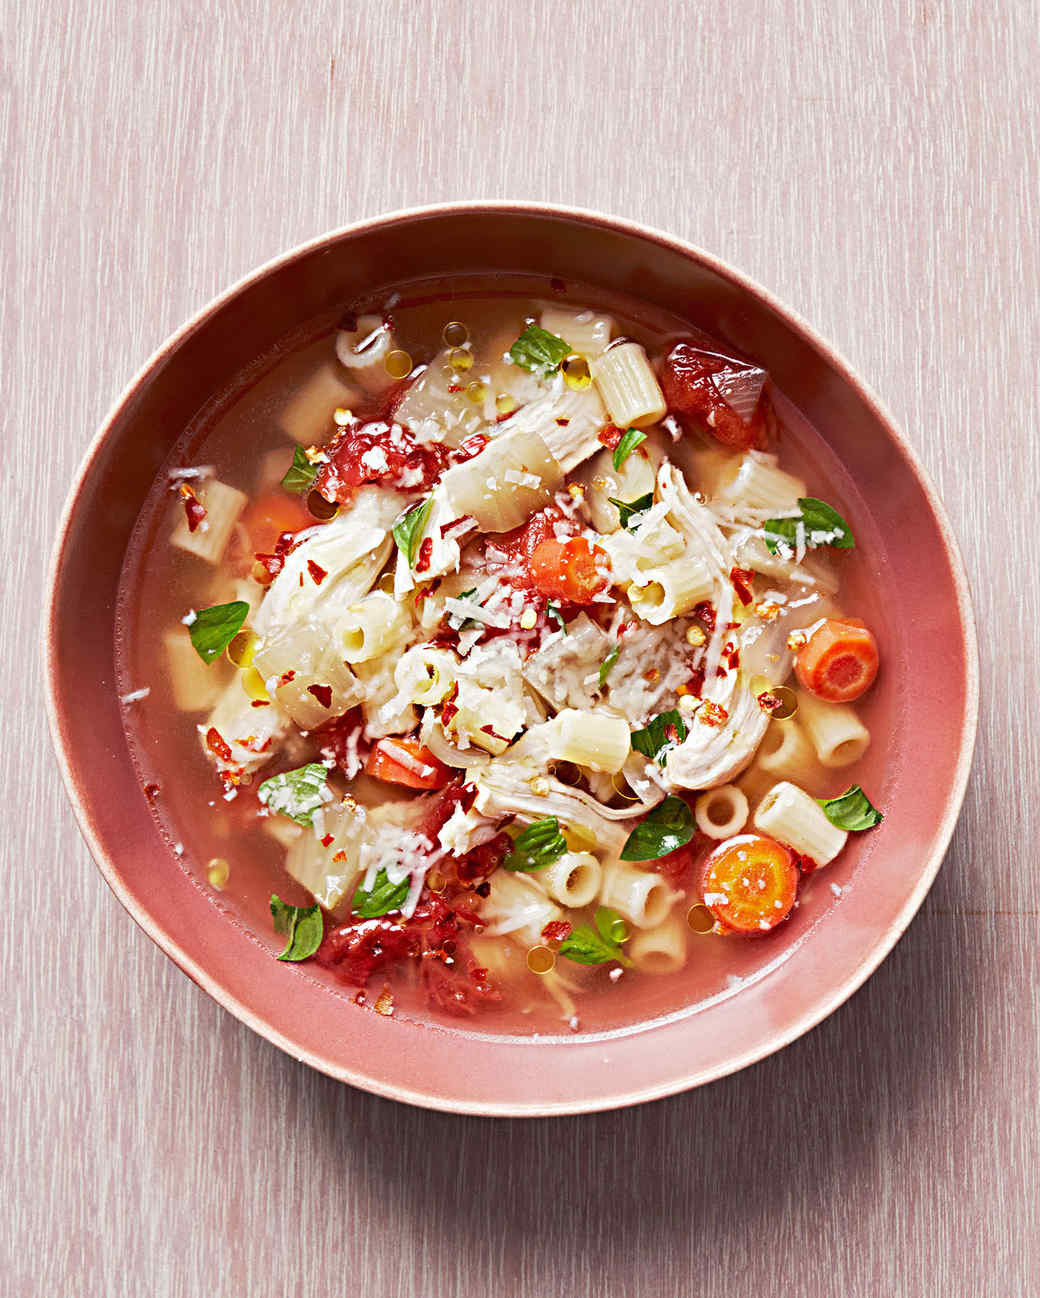 Tomato Based Soups  Tomato based chicken soup recipes Food chicken recipes